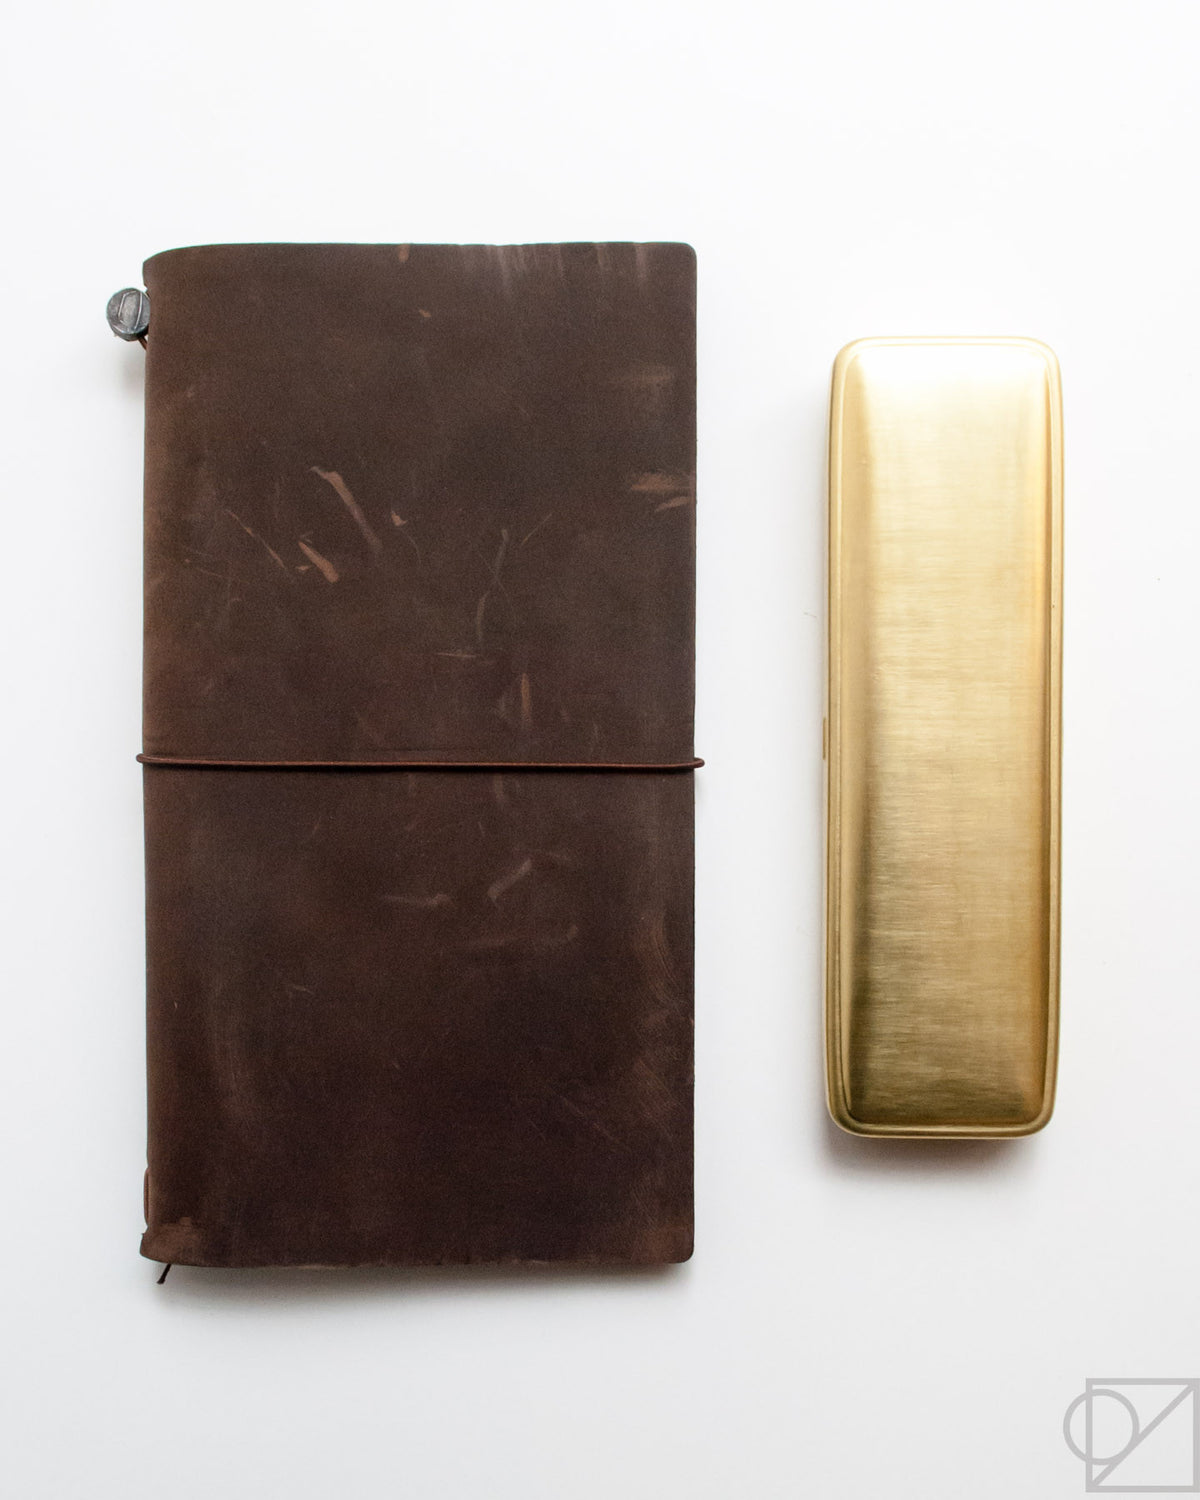 Midori Brass Pen Case size comparison with Traveler's Company journal